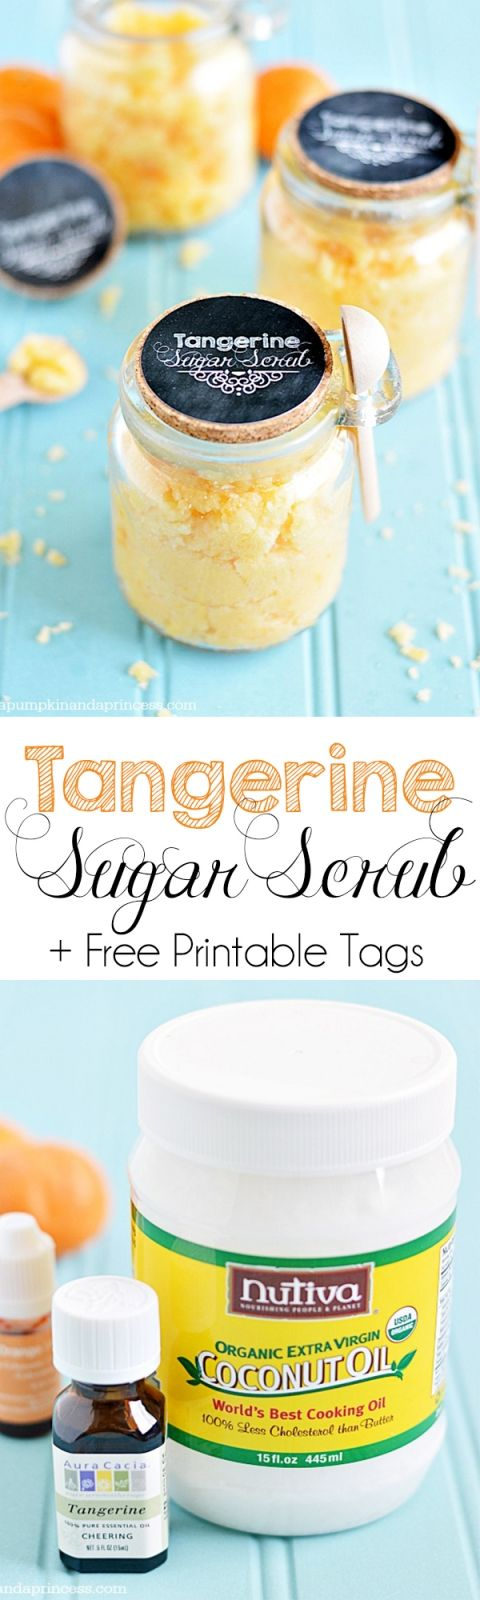 Tropical Sugar Scrub Recipe